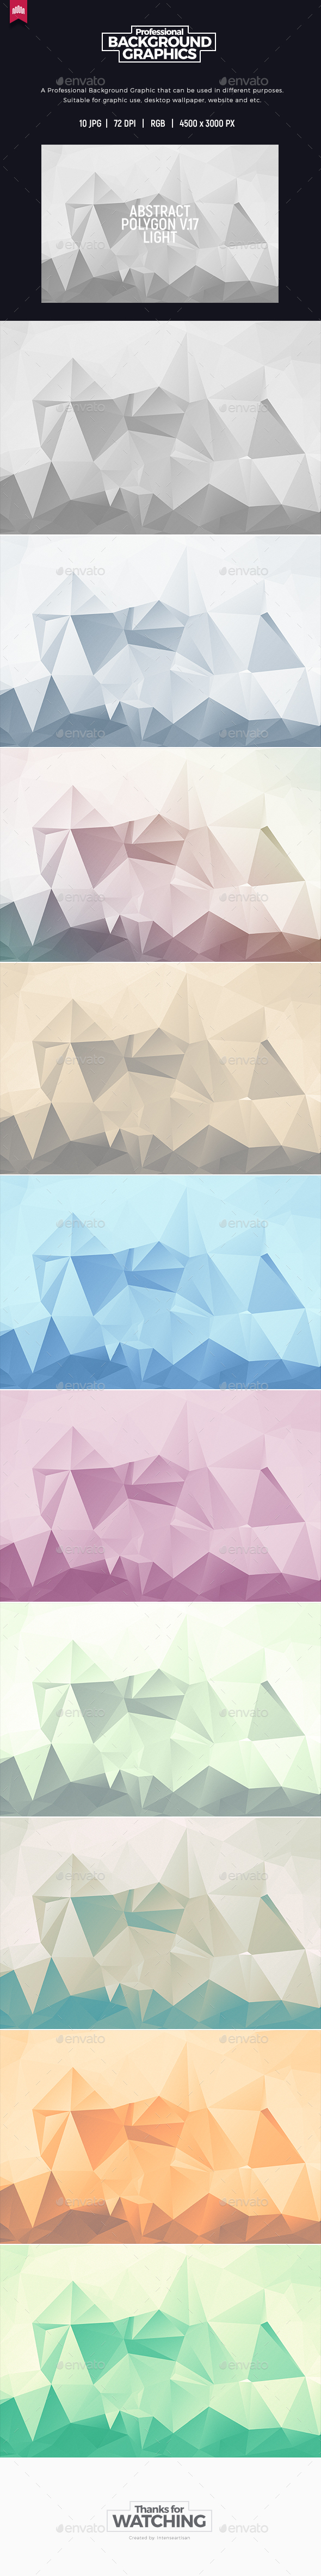 Light - Abstract Polygon V.17 - Background - Abstract Backgrounds